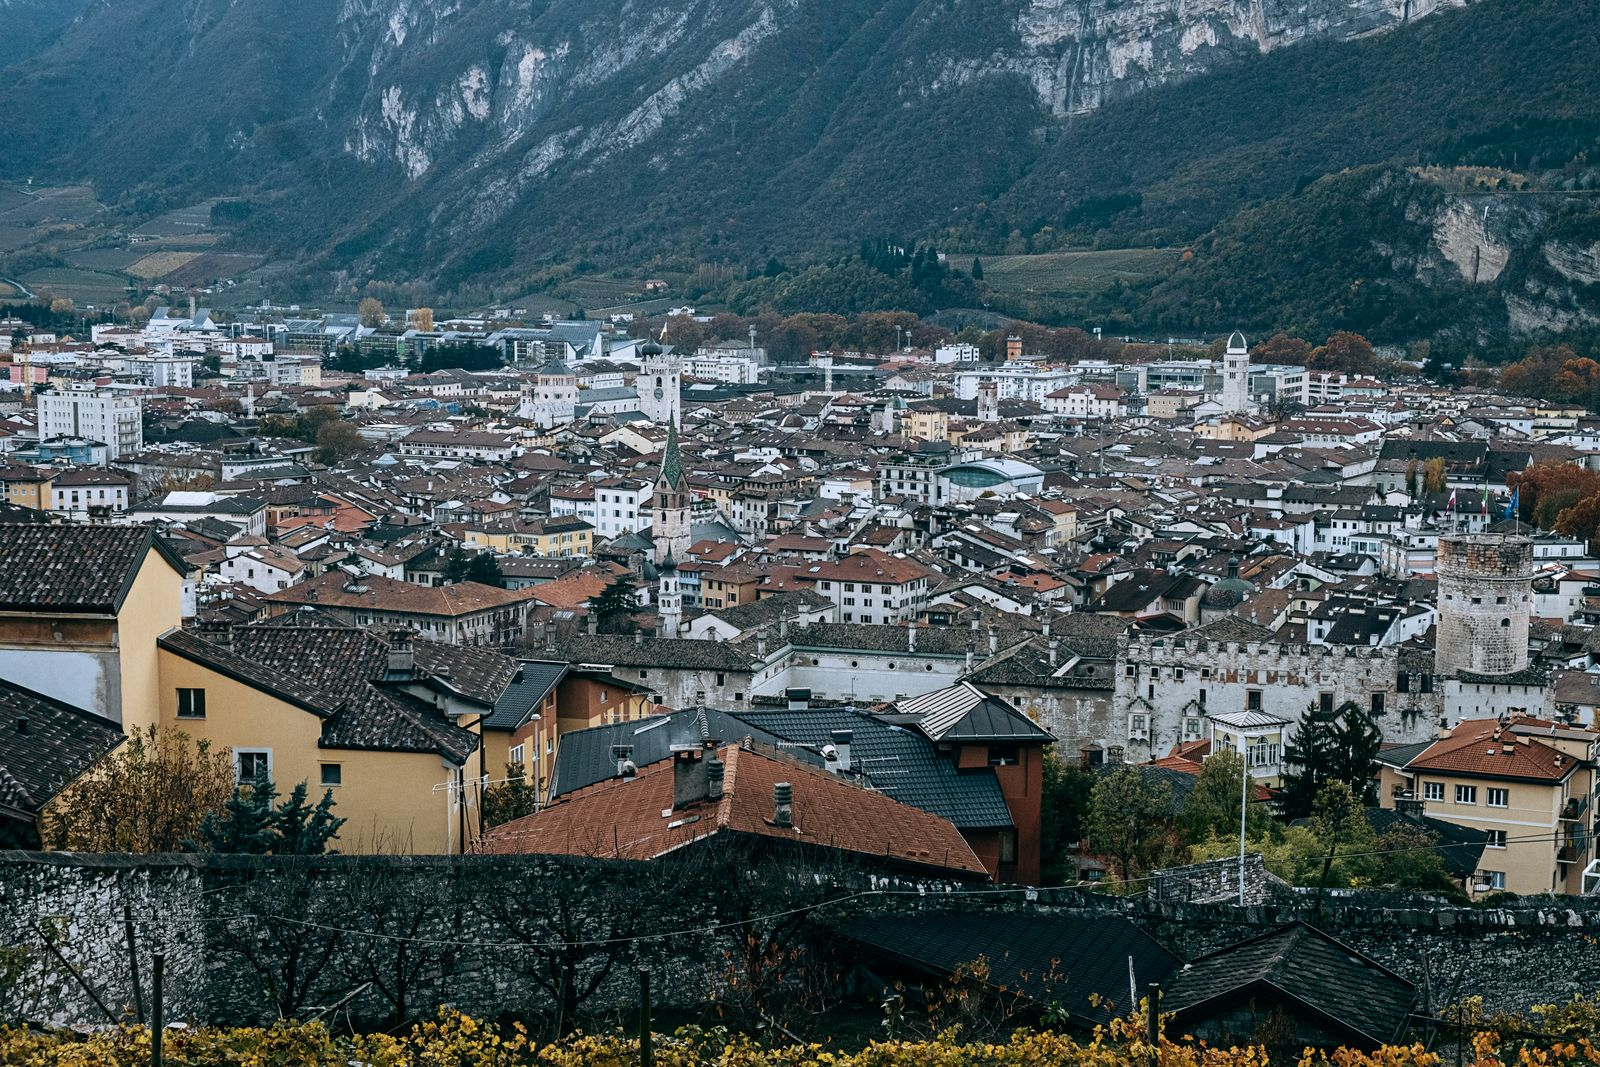 Trento, Italy. View of the town from the Monastery.